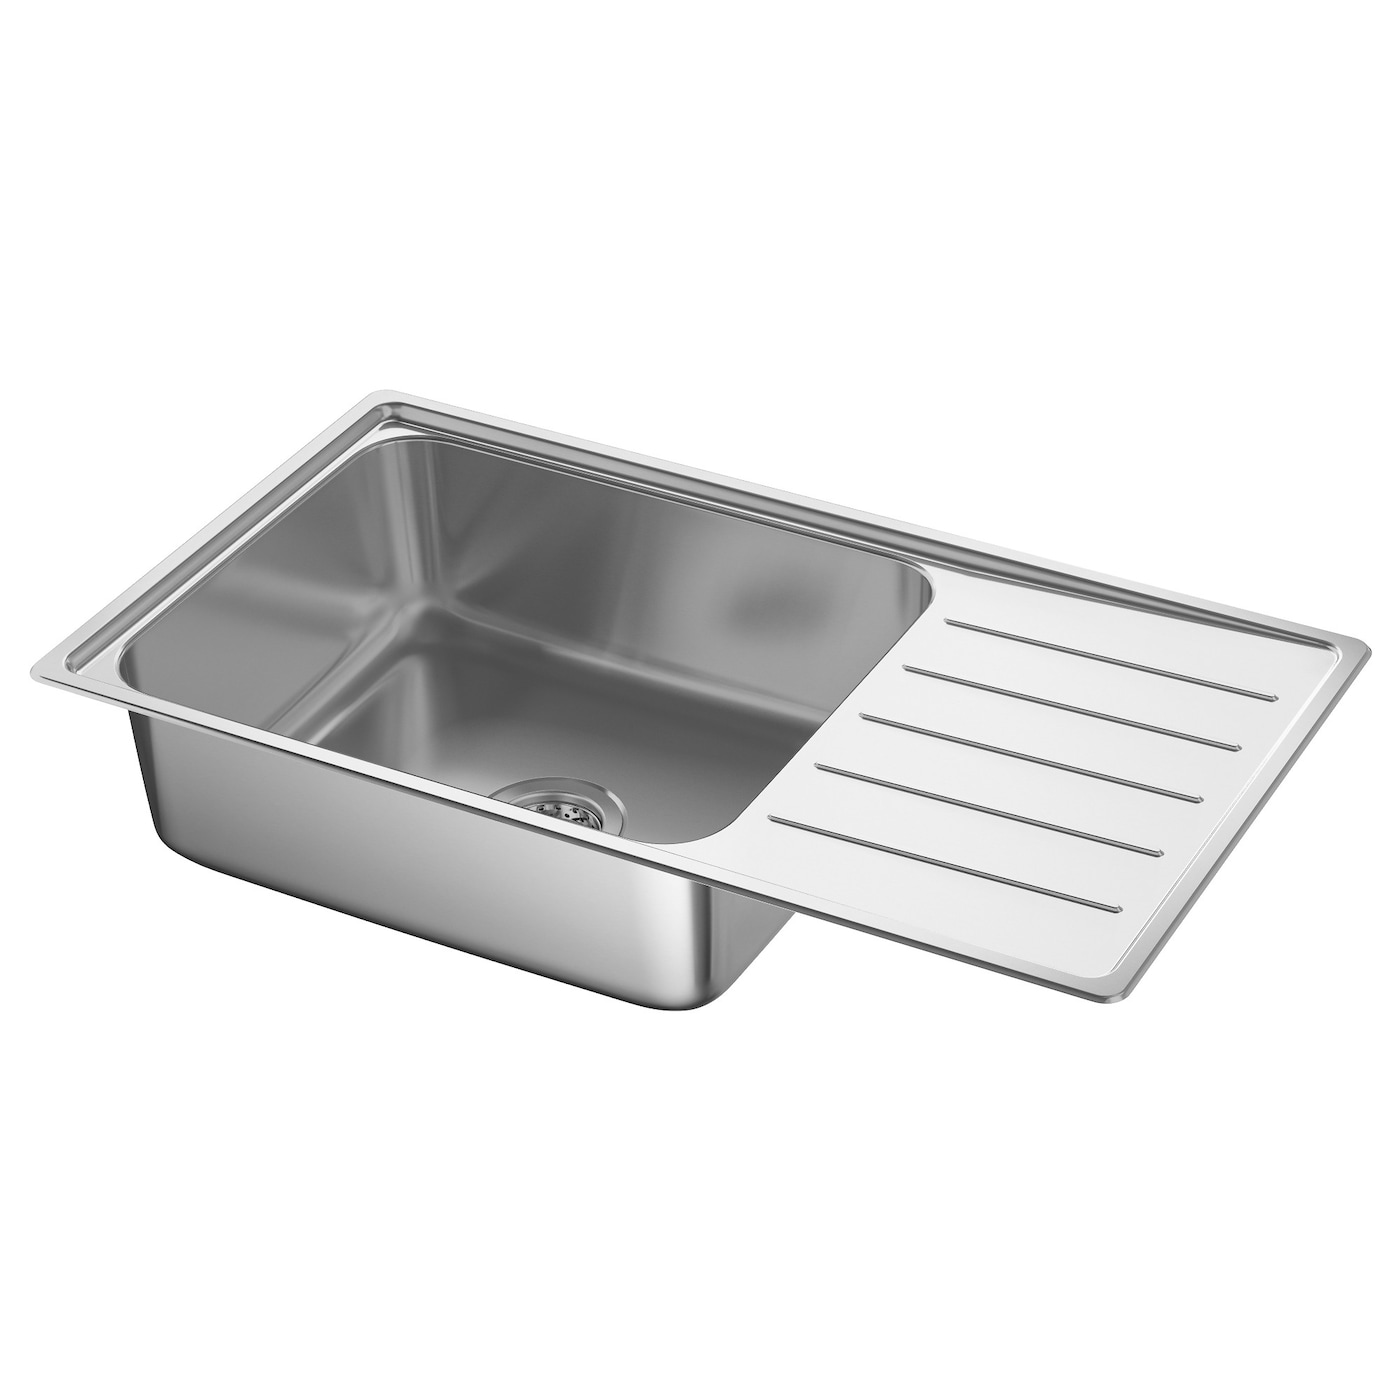 IKEA VATTUDALEN inset sink 1 bowl with drainboard  sc 1 st  Ikea & VATTUDALEN Inset sink 1 bowl with drainboard Stainless steel 86 x ...